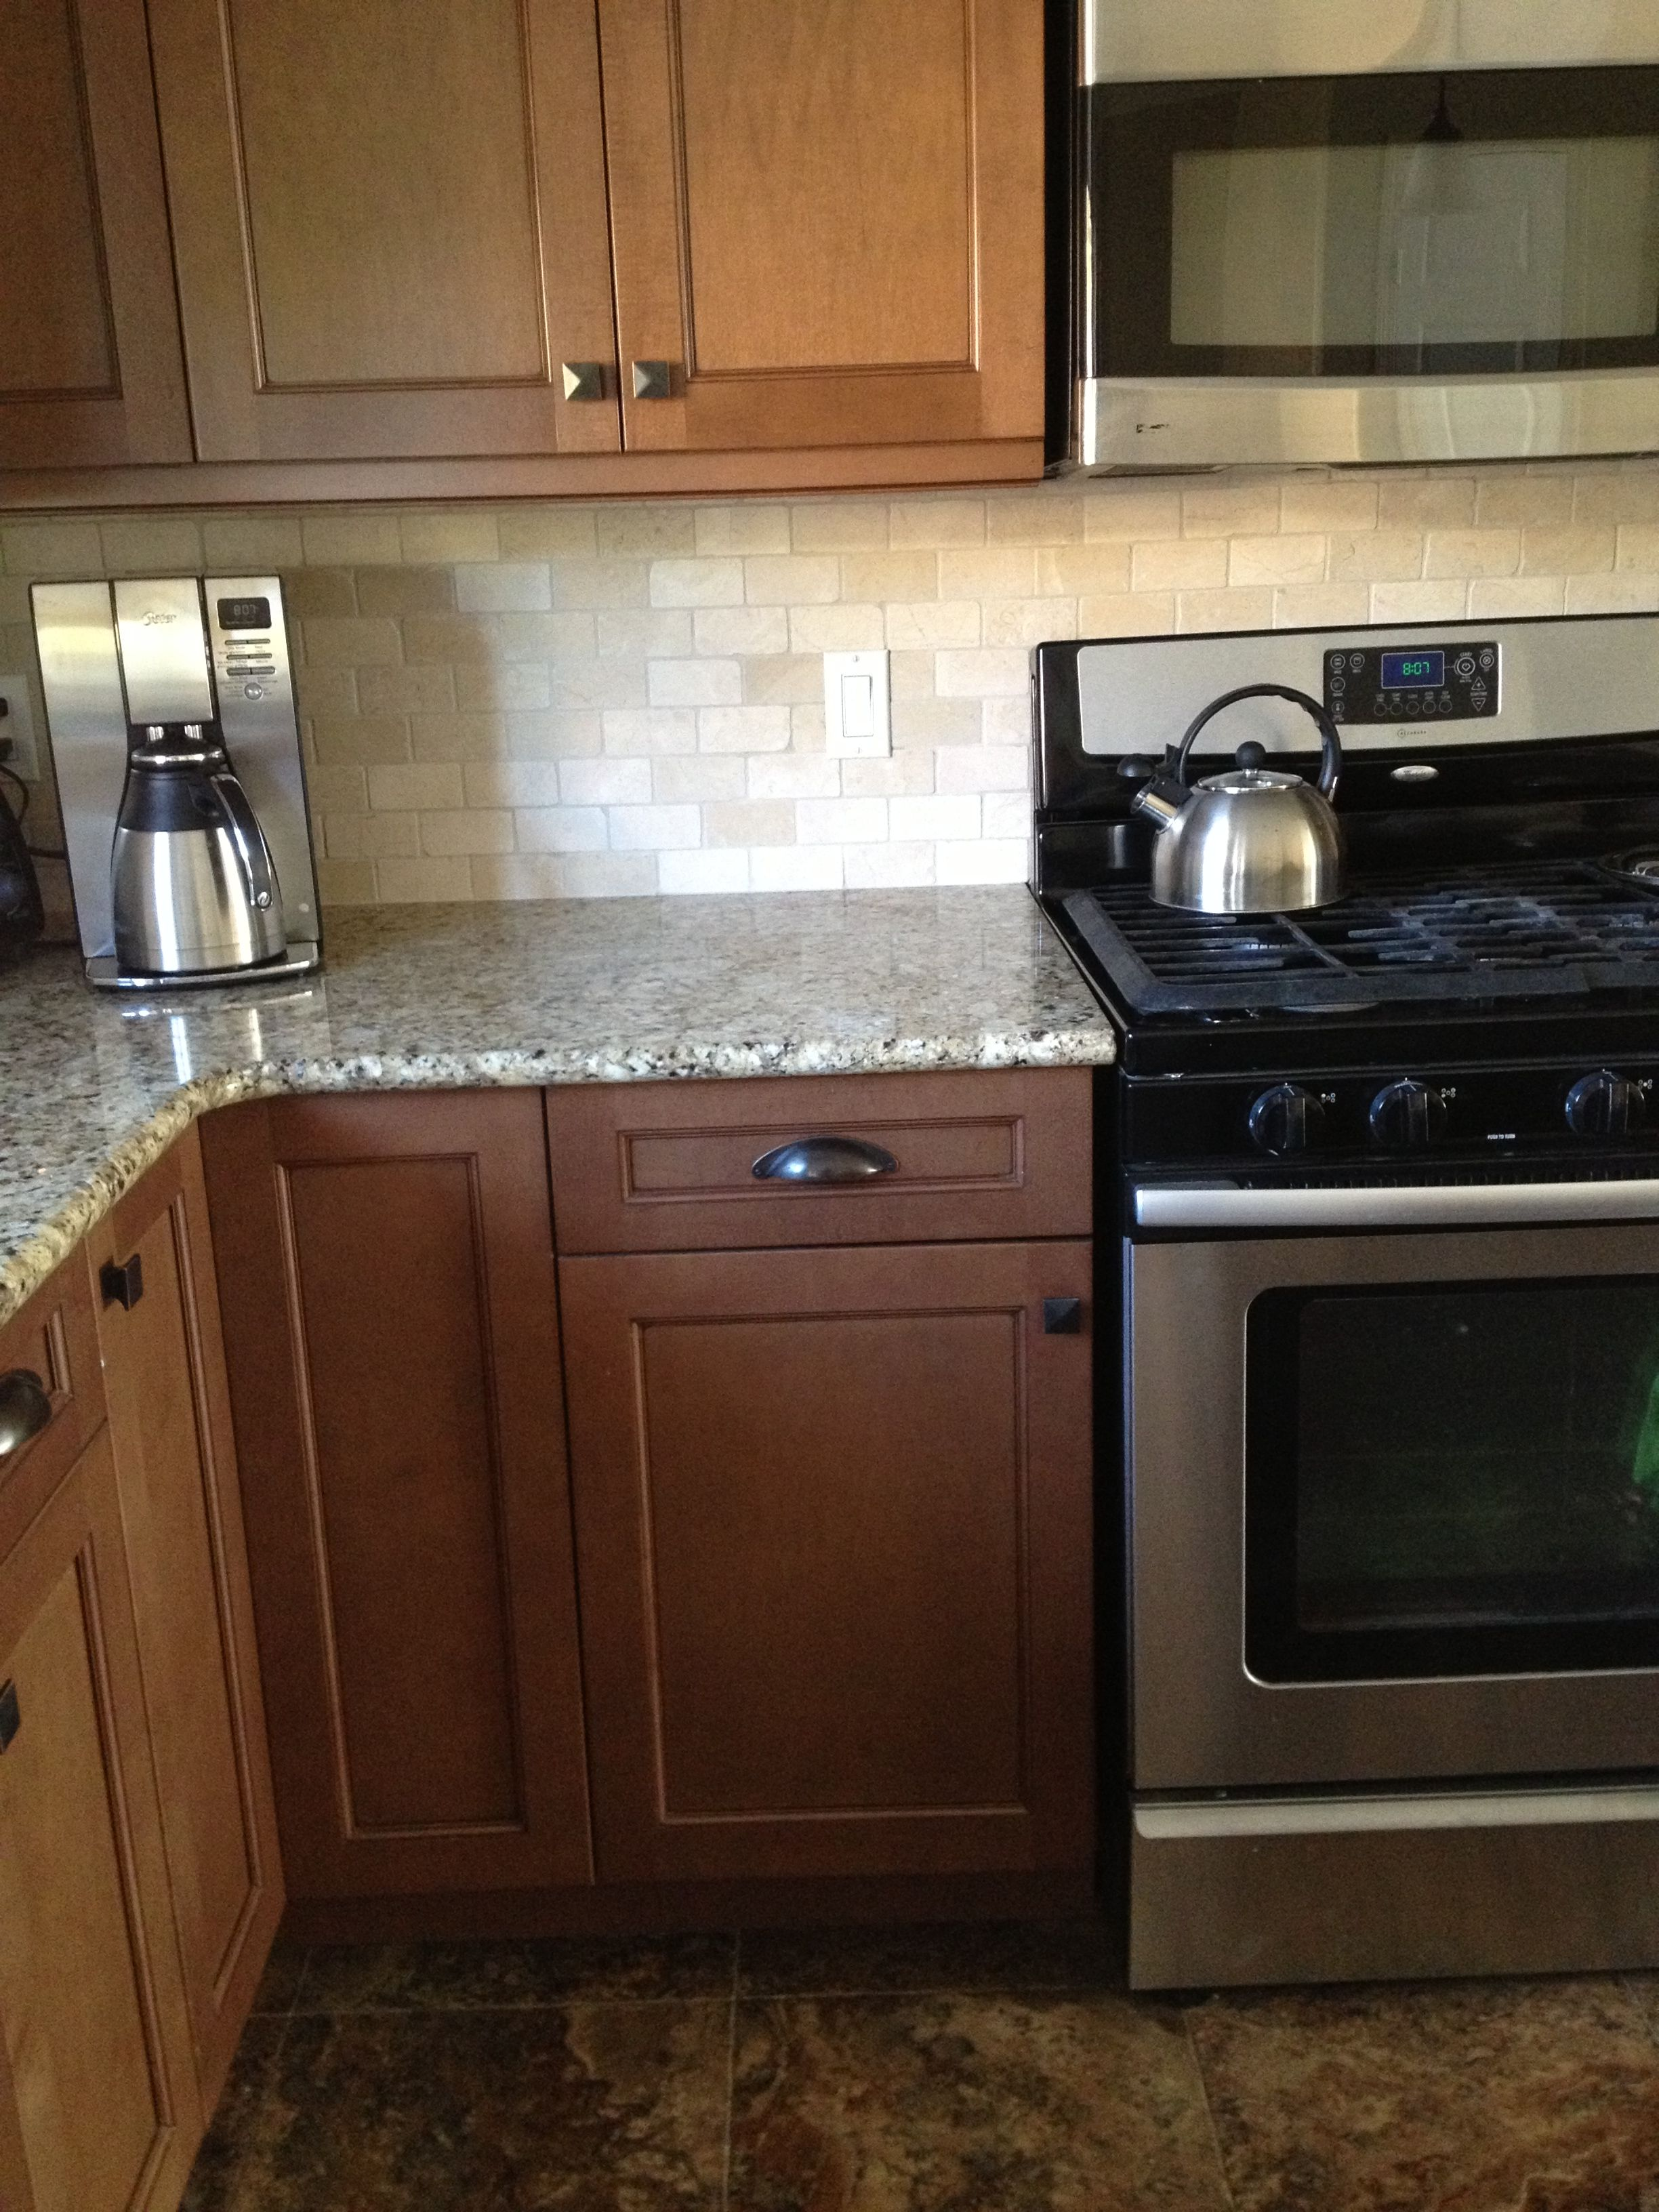 Toffee with Mocha Glaze Maple cabinets, stone backsplash ... on Maple Cabinets With Backsplash  id=61361